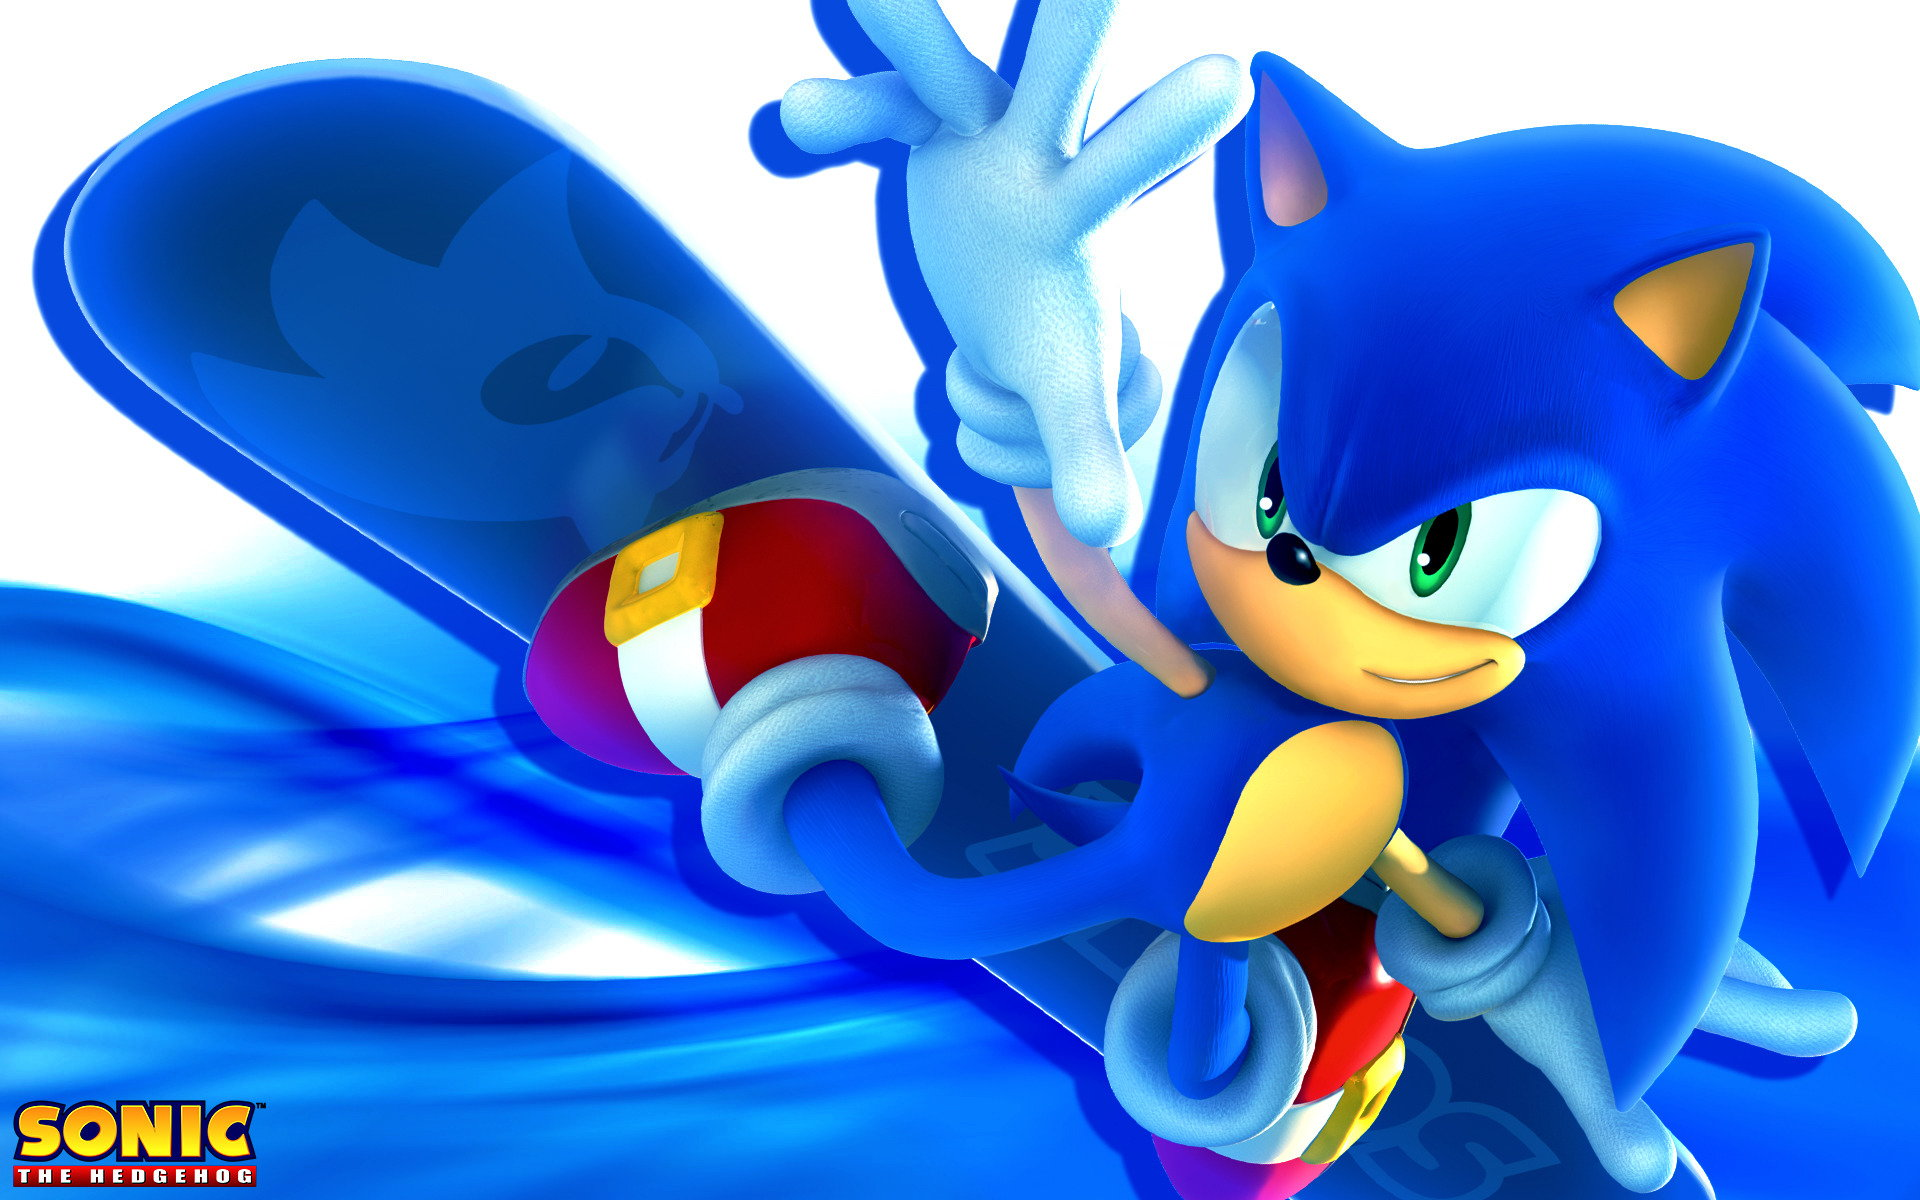 Fans of Sonic the Hedgehog